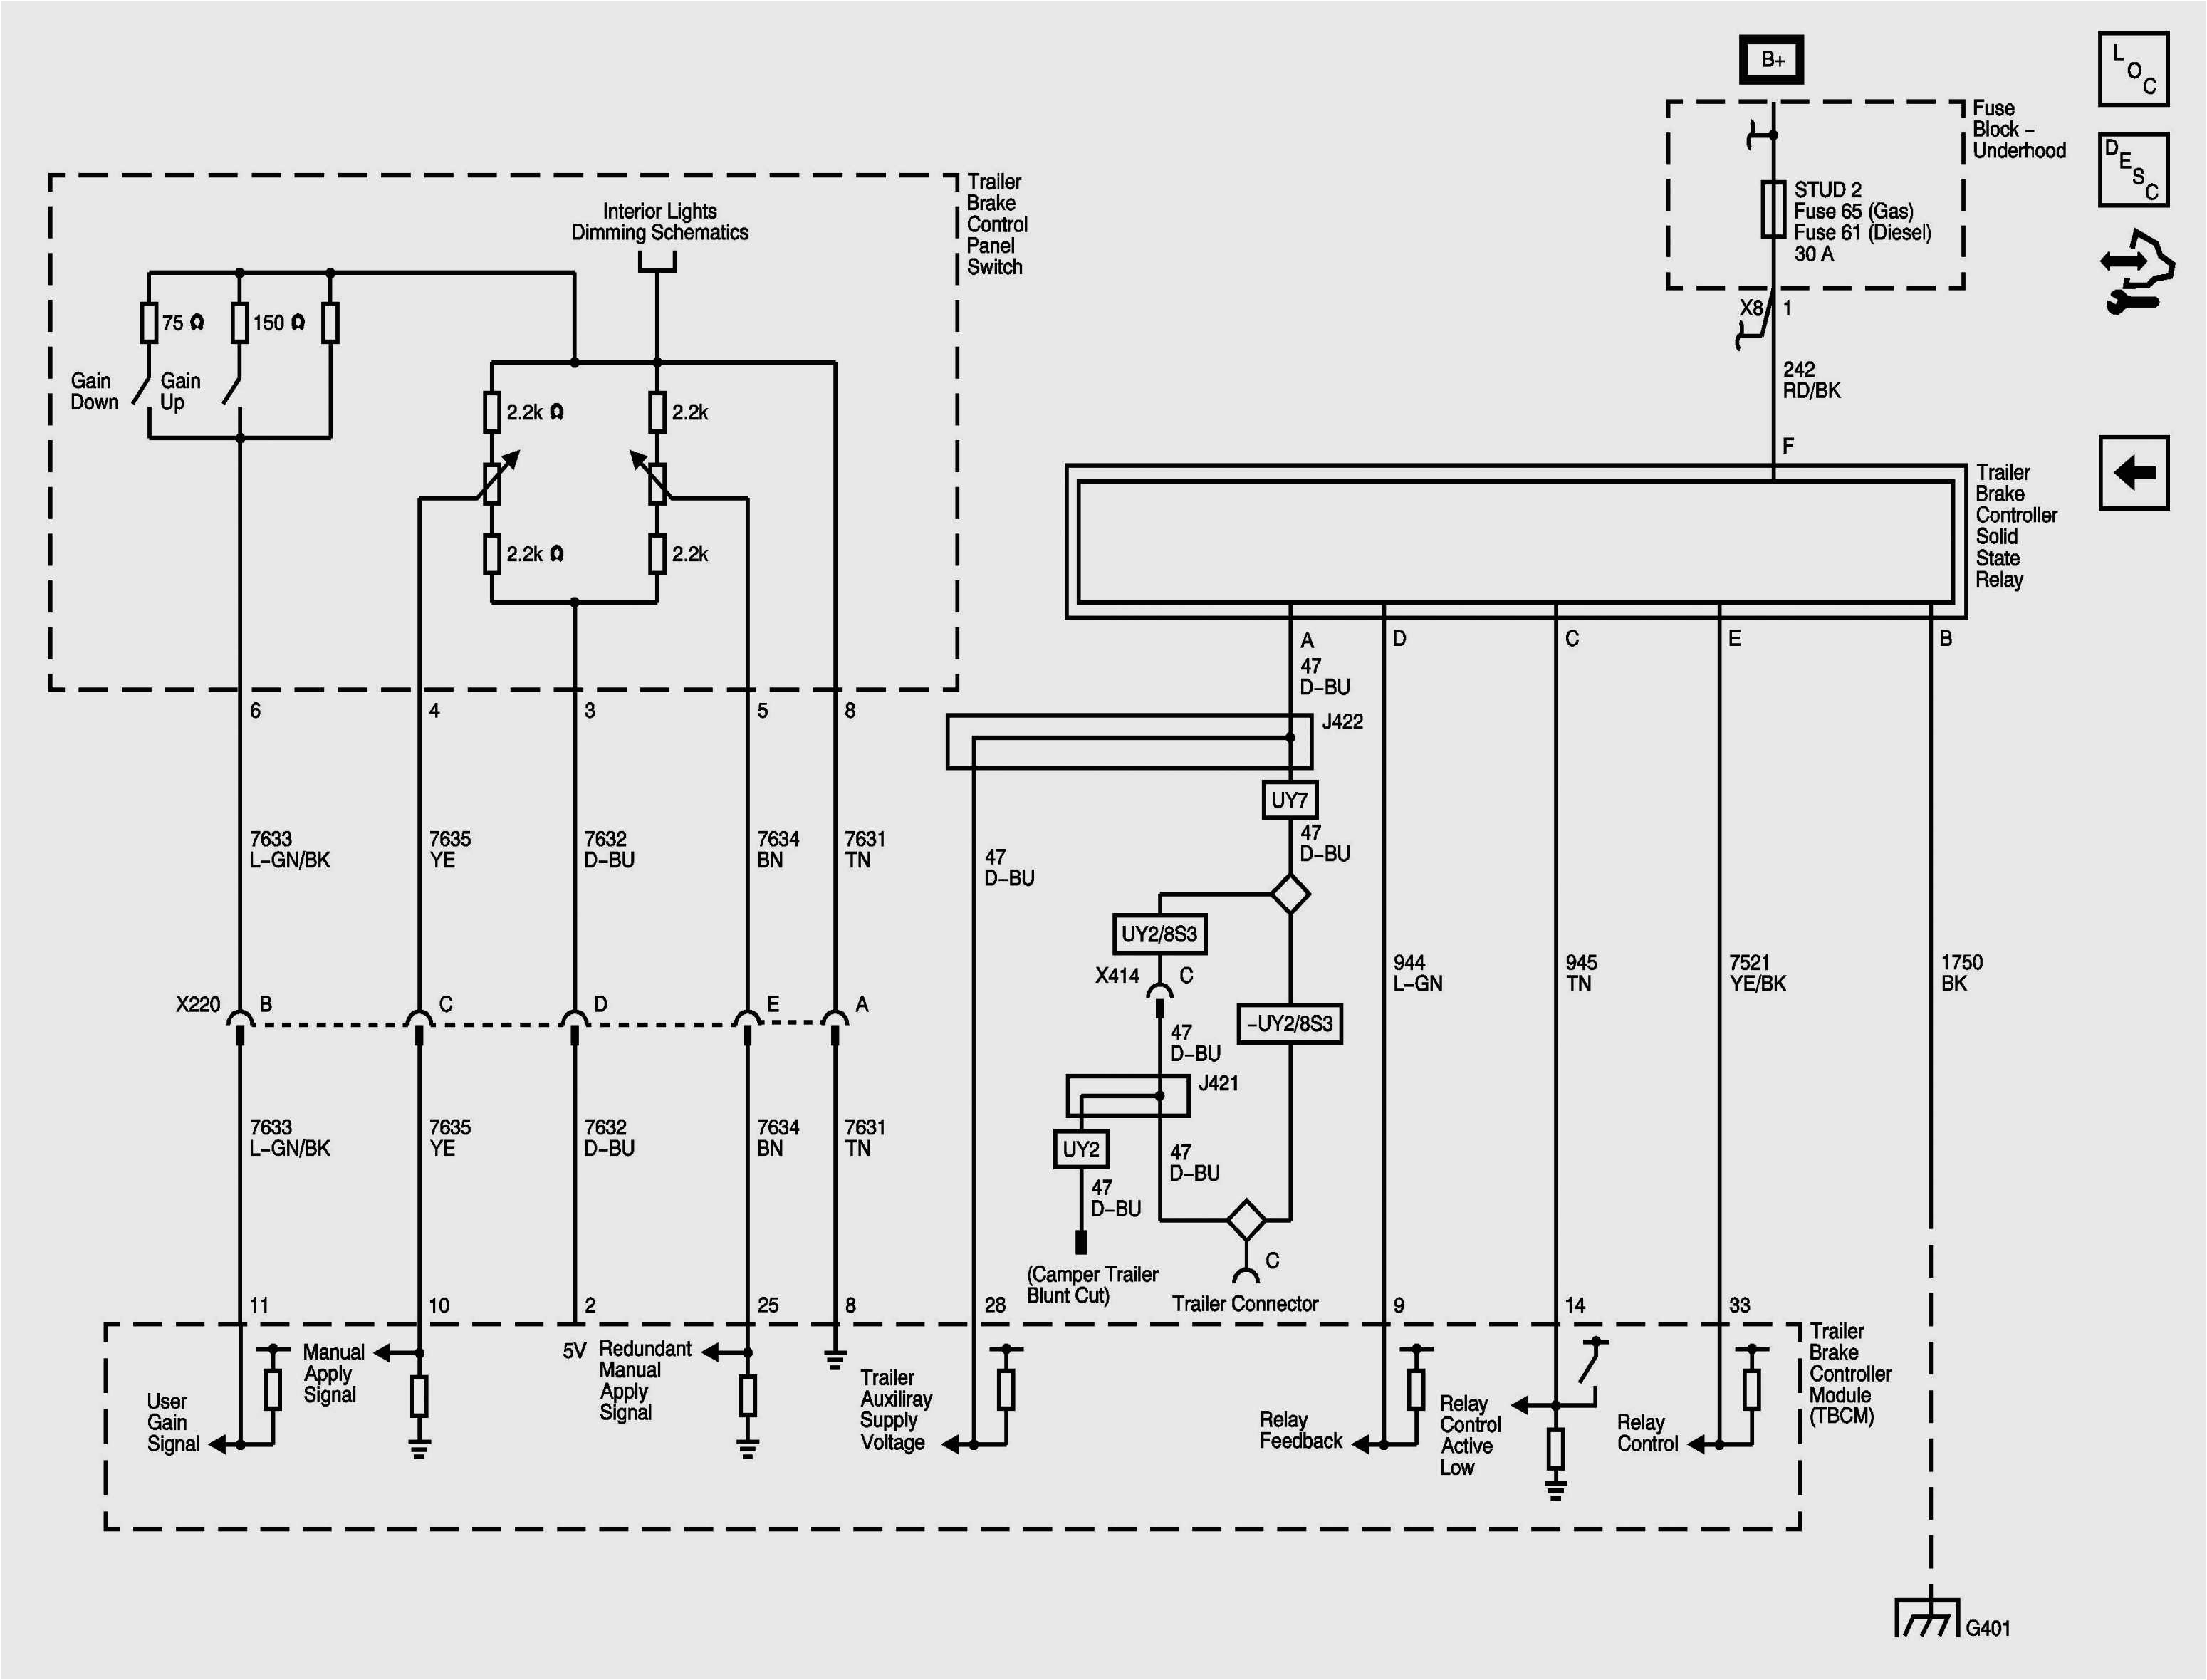 2005 gmc c4500 wiring diagram wiring diagram papergmc canyon stereo wiring diagram wiring diagrams konsult 2005